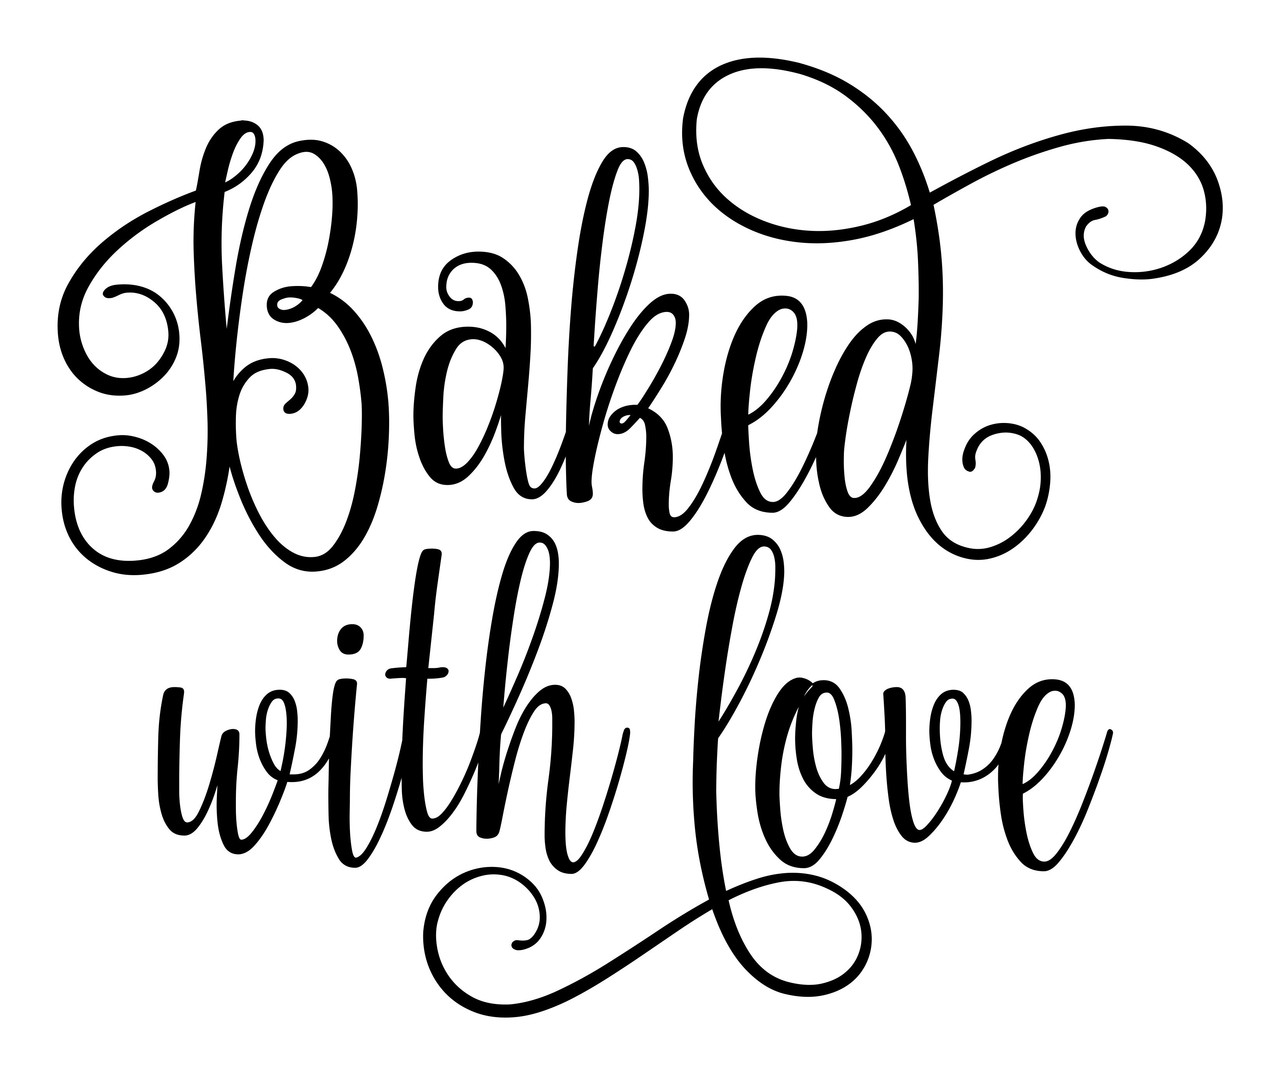 Baked With Love Vinyl Decal Sticker Home Kitchen Decor